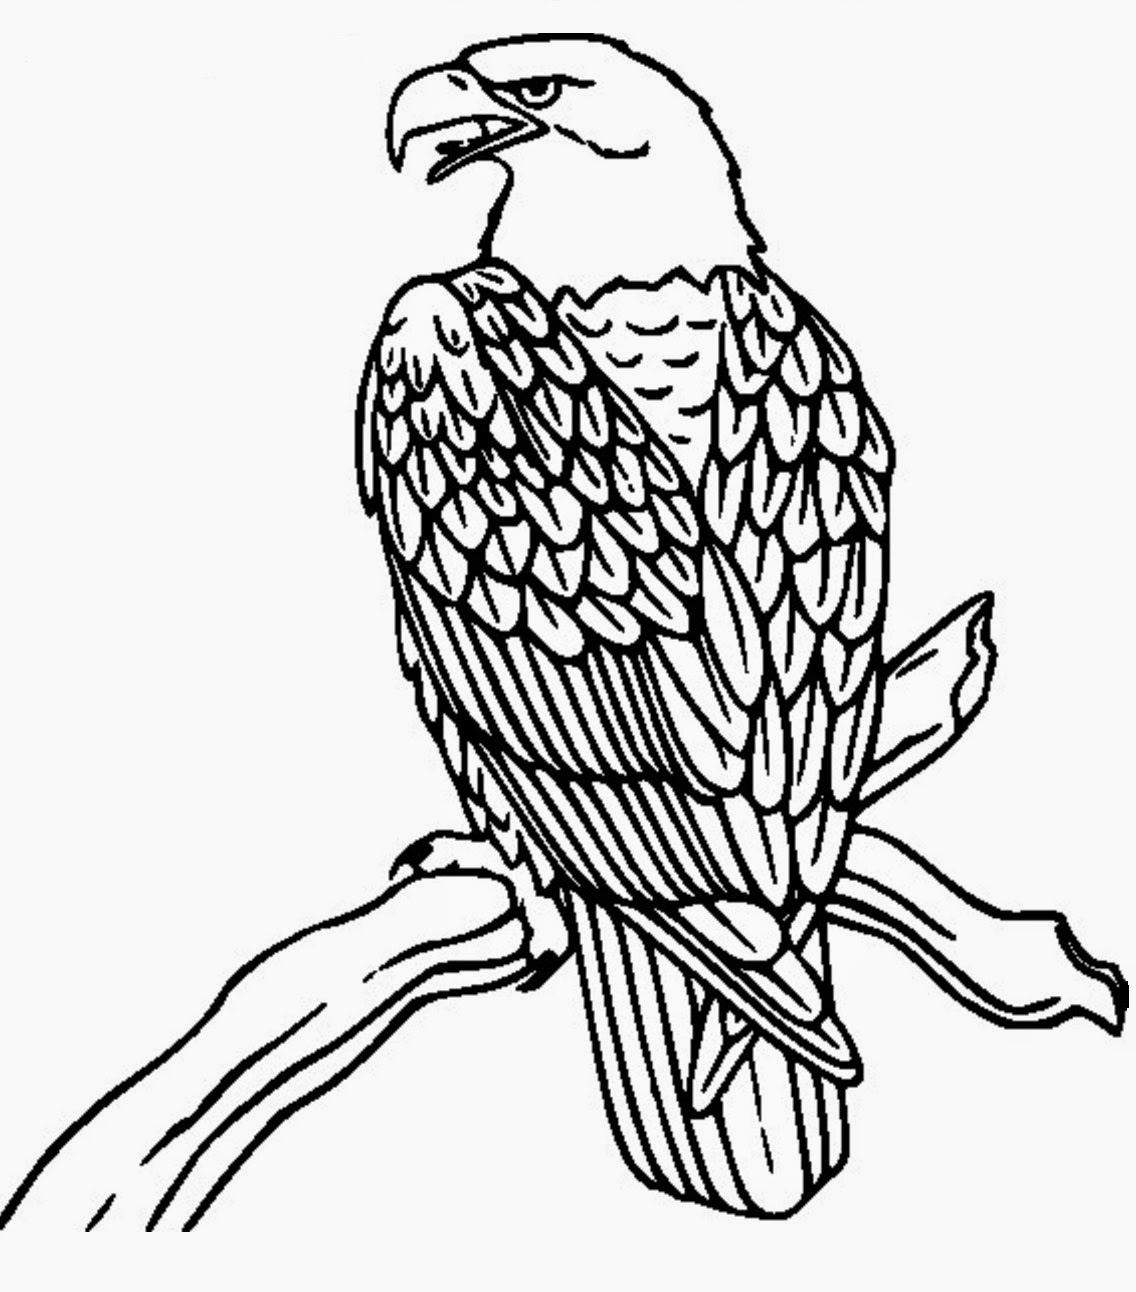 Eagle over a branch tattoo stencil